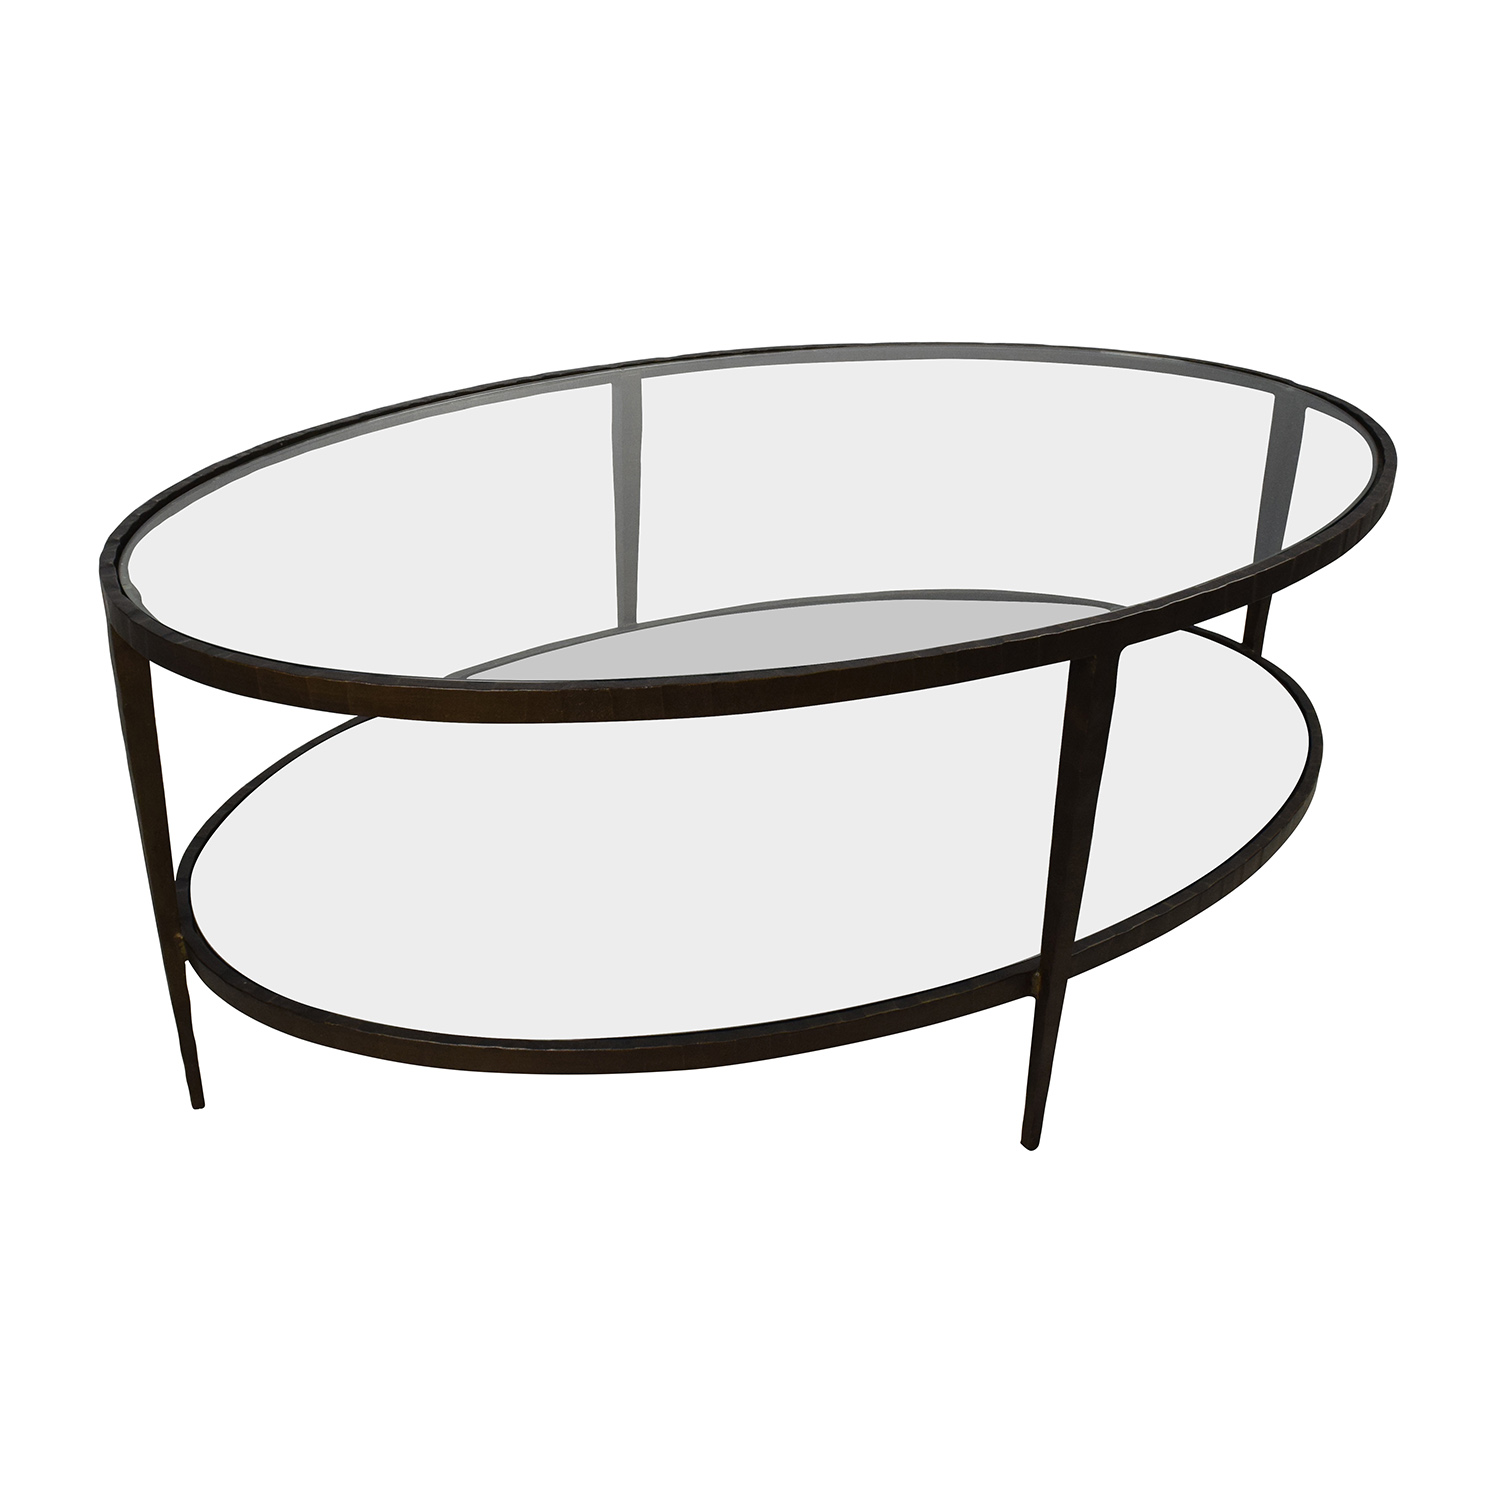 Crate And Barrel Black Marble Coffee Table: Crate & Barrel Crate & Barrel Clairmont Glass